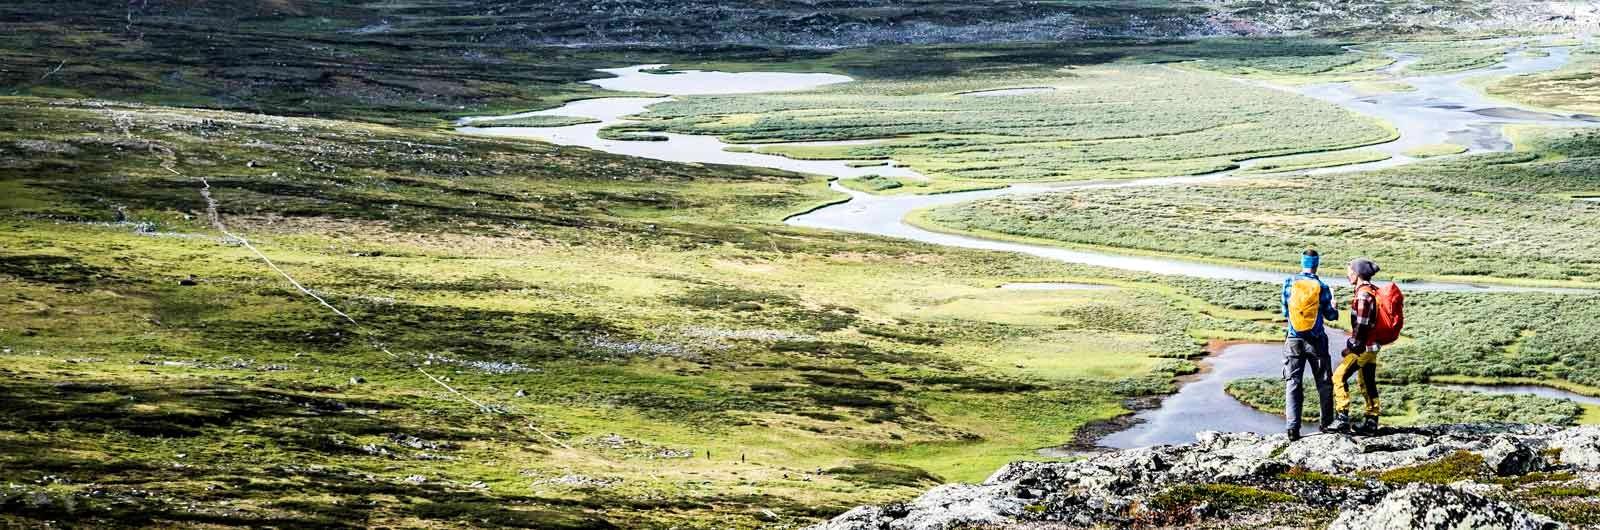 Hikers above river delta on Kungsleden Trail